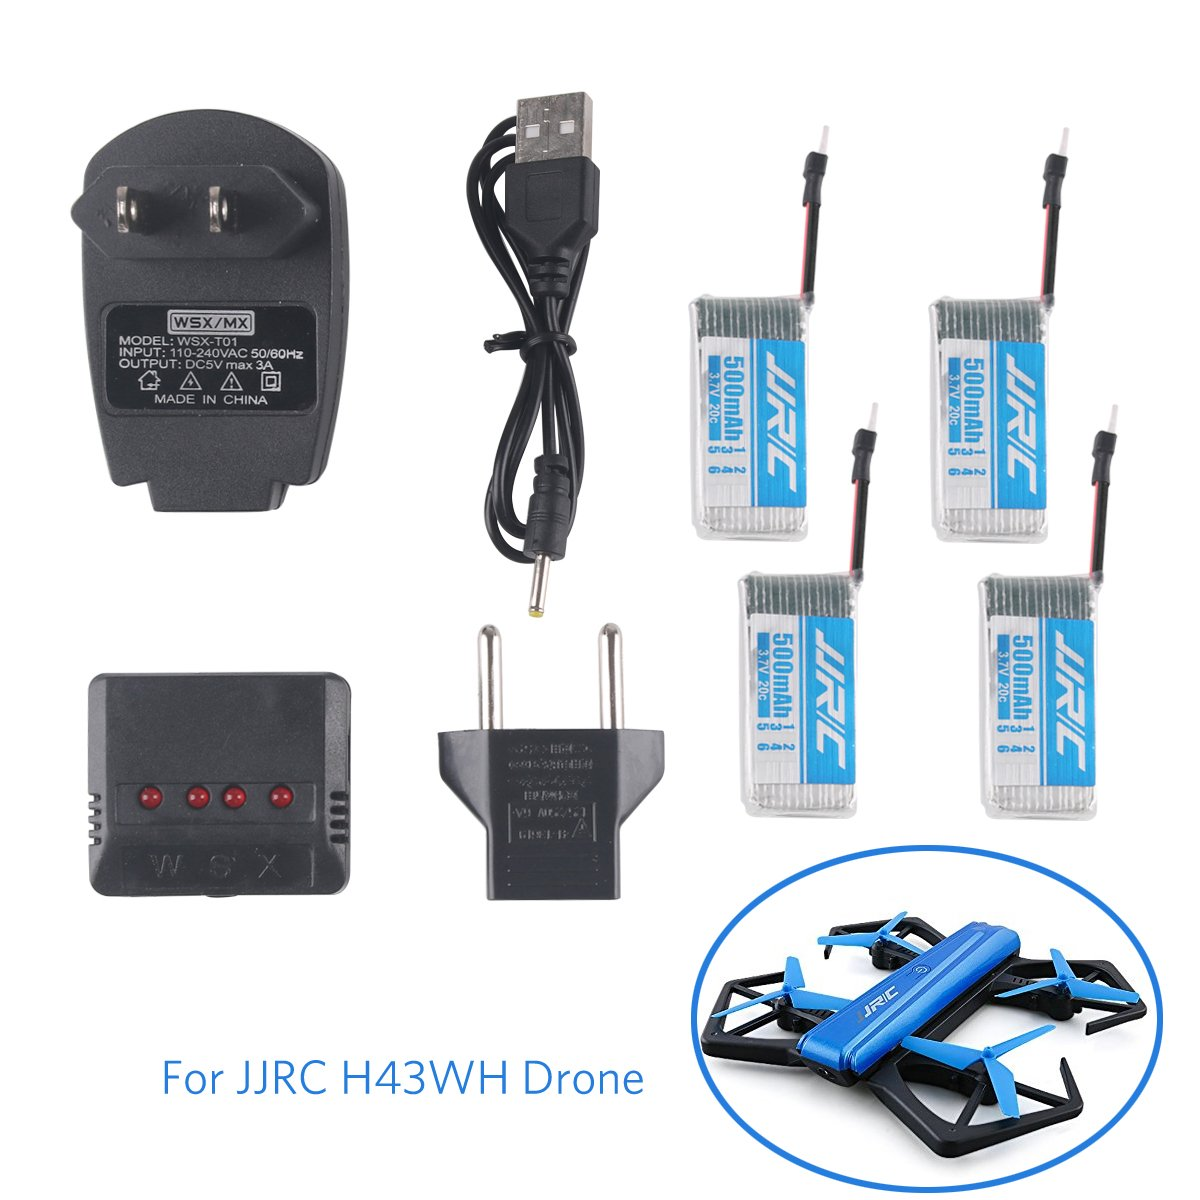 4pcs 1S 500mAh Battery JJRC H43WH with 1pc 4in1 Charger for JJRC H43WH H31 H37 H6D Hubsan X4 FPV H107C H107D H107L H107P H108 JXD392 JXD388 JXD385 UDI U816A RC Quadcopter